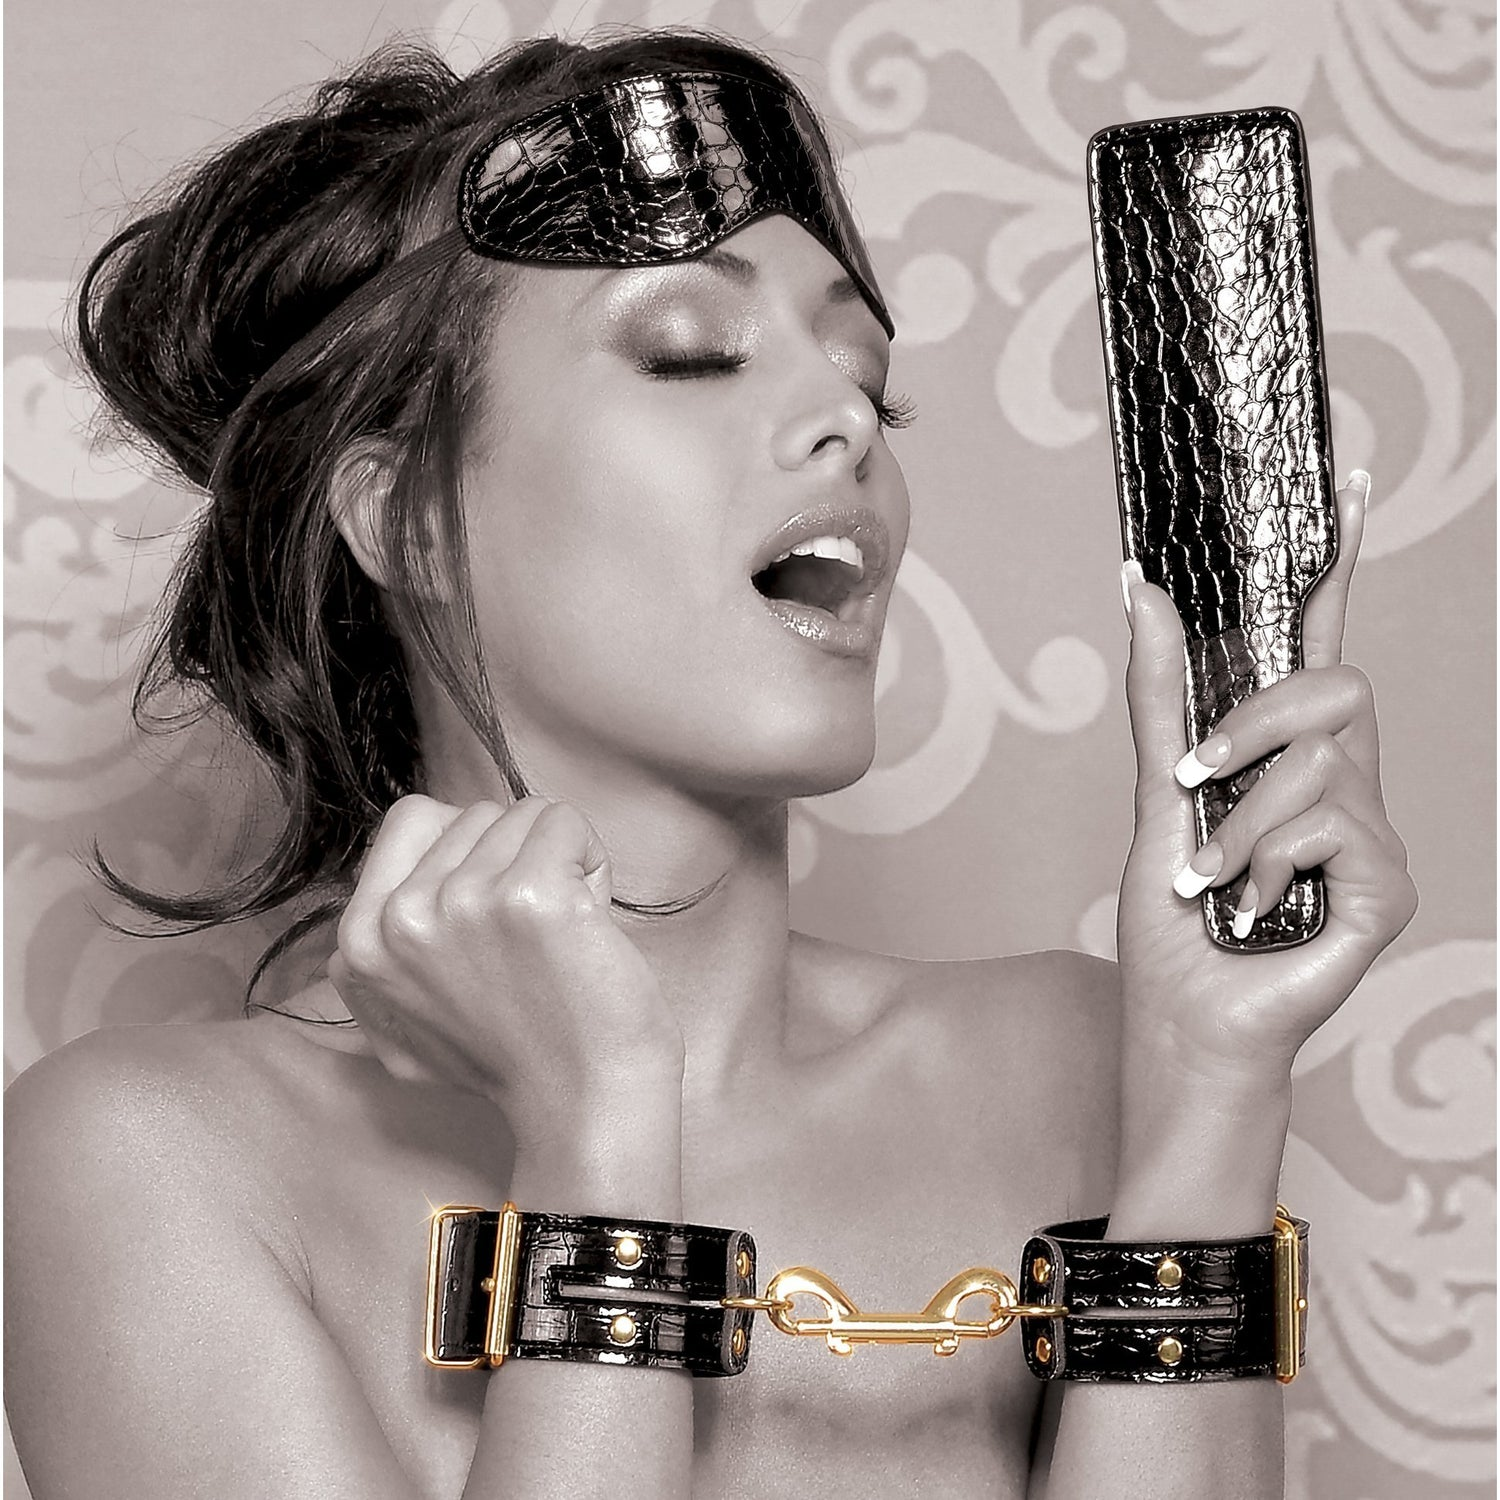 Pipedream - Fetish Fantasy Gold Fantasy Bondage Kit | CherryAffairs Singapore